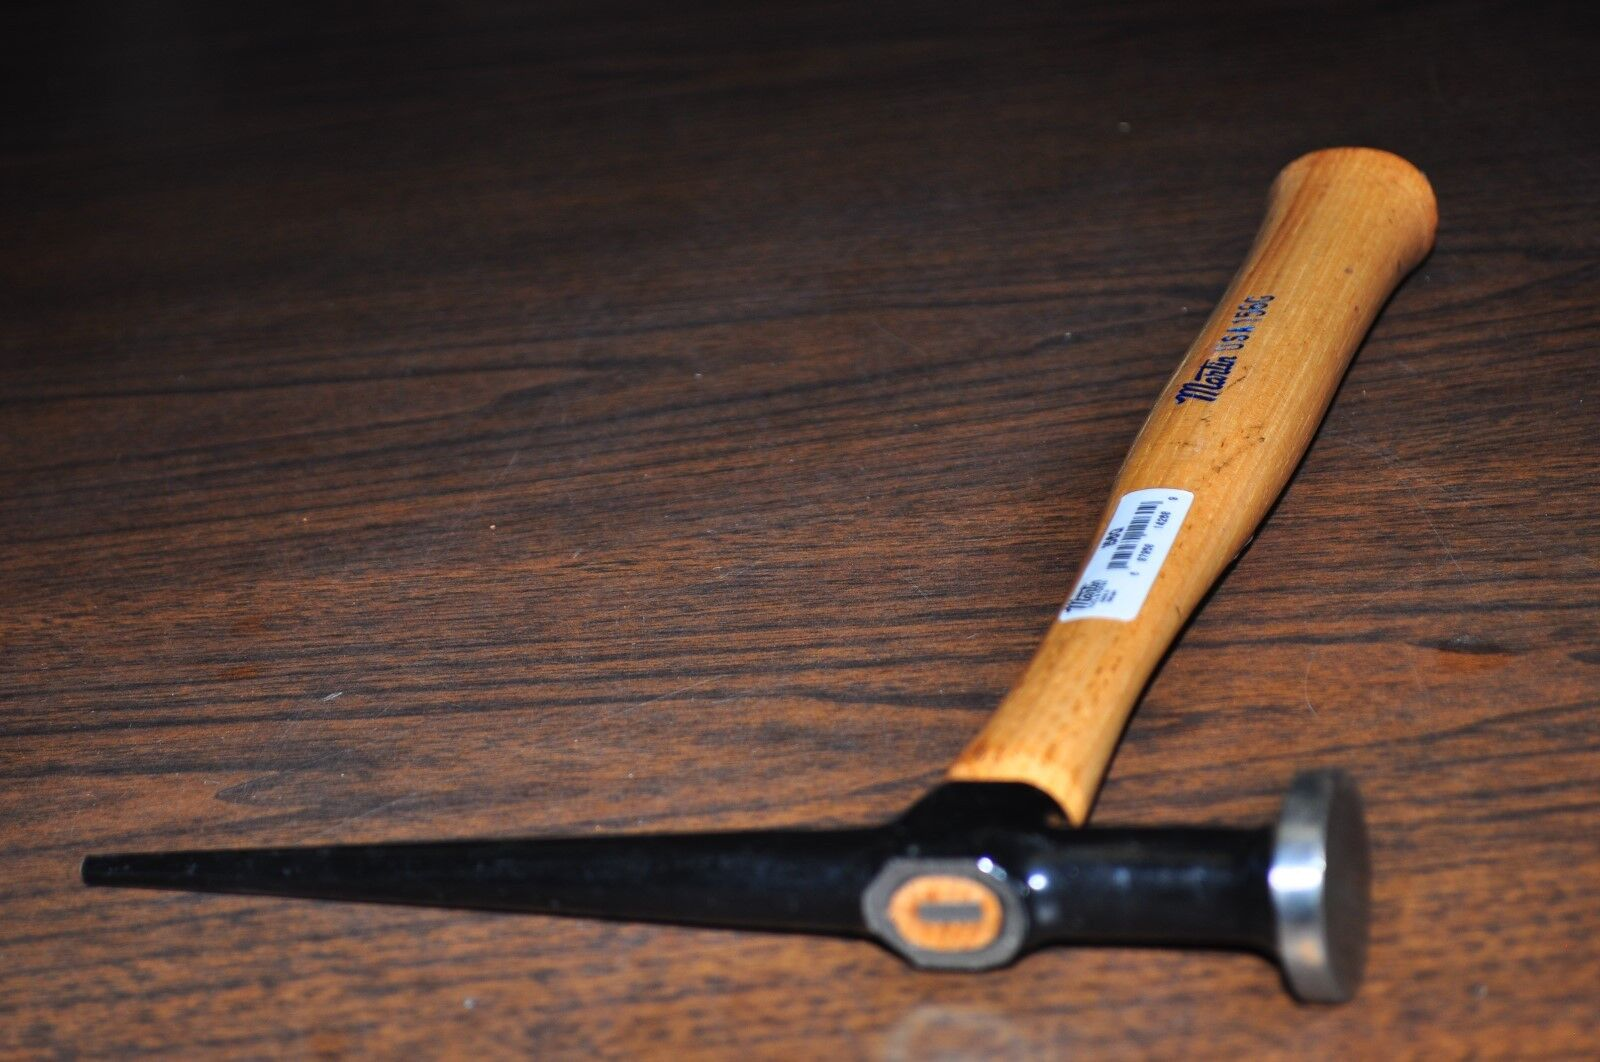 AUTO BODY LON PICK HAMMER W//ROUND DING HEAD WOOD HANDLE MARTIN 156G  MADE IN USA